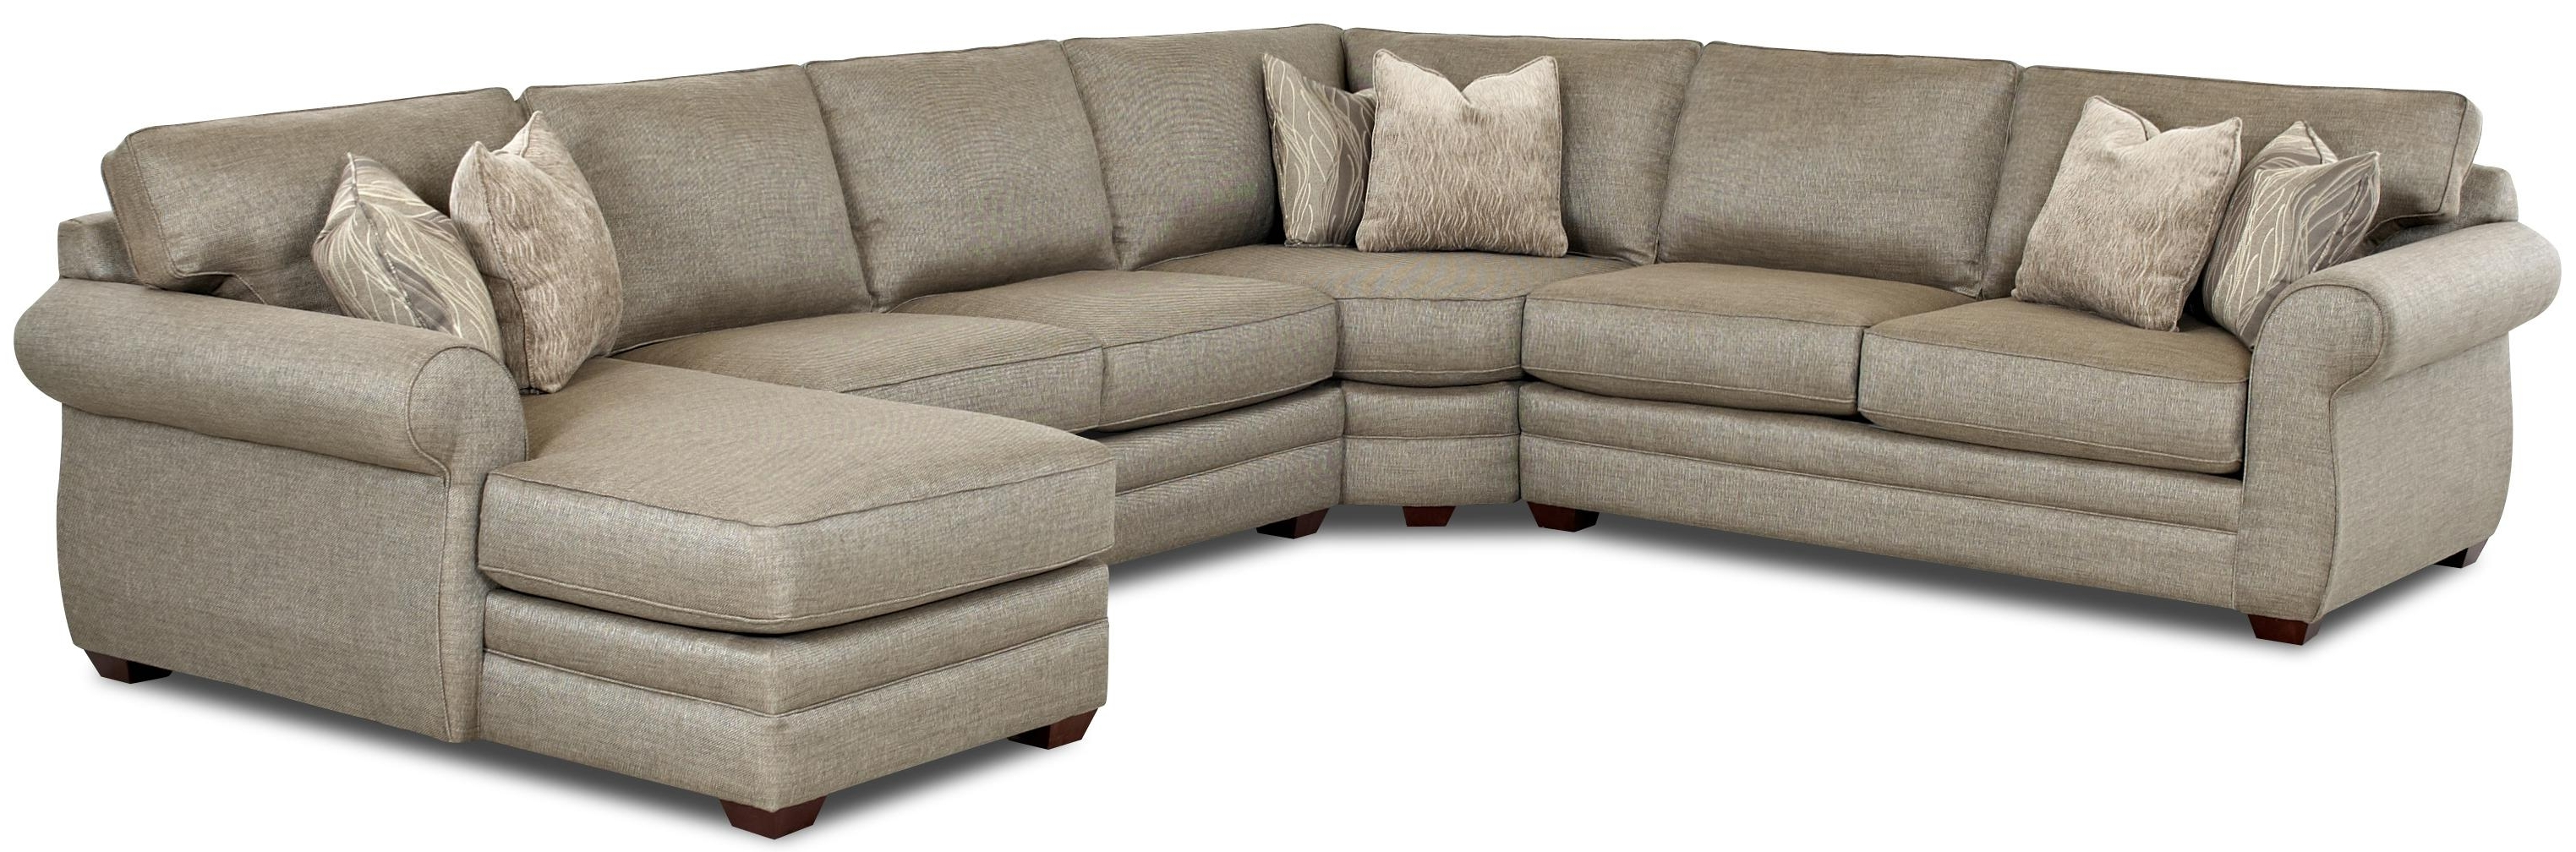 Killeen Tx Sectional Sofas In Most Popular Klaussner Clanton Transitional Sectional Sofa With Right Chaise (View 8 of 15)